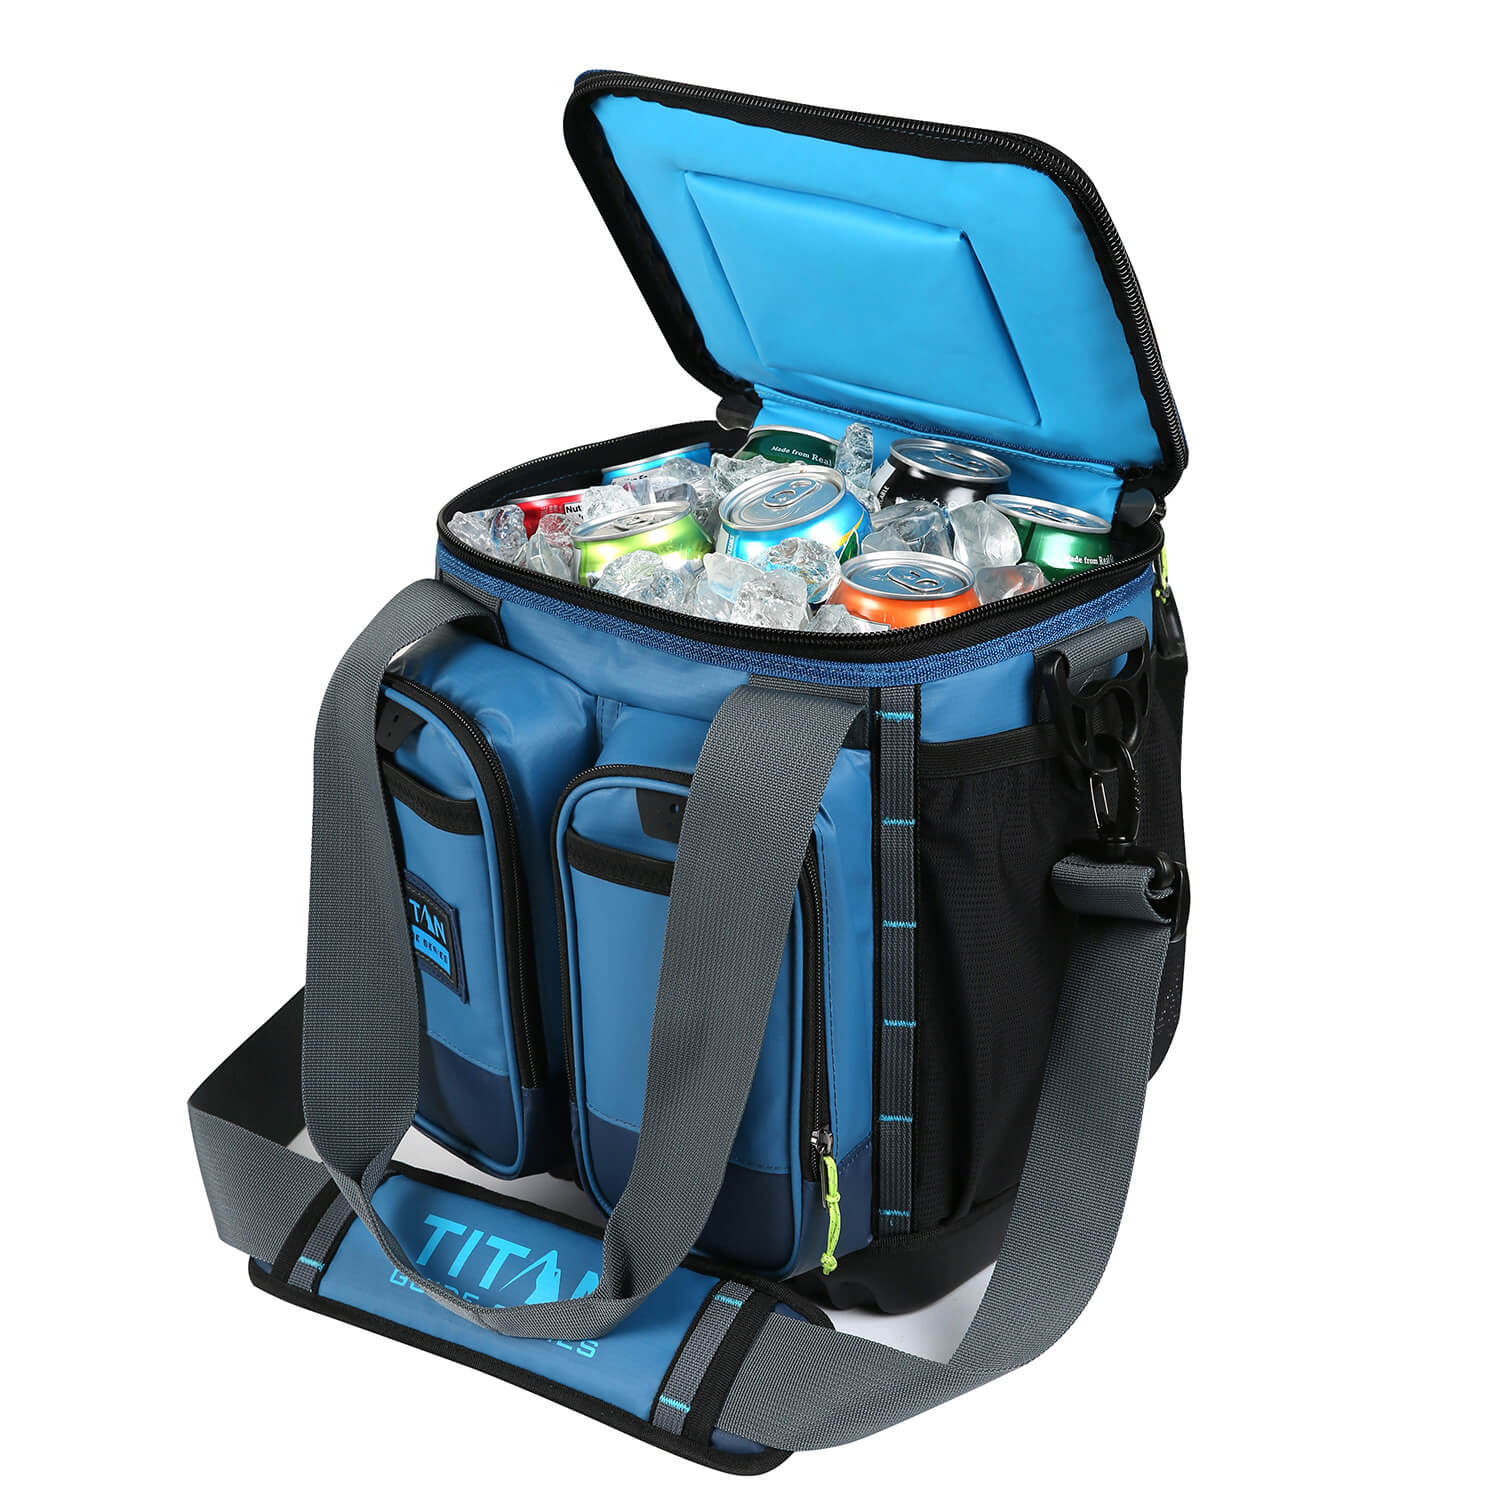 Titan Guide Series™ 16 Can Cooler - Open, propped